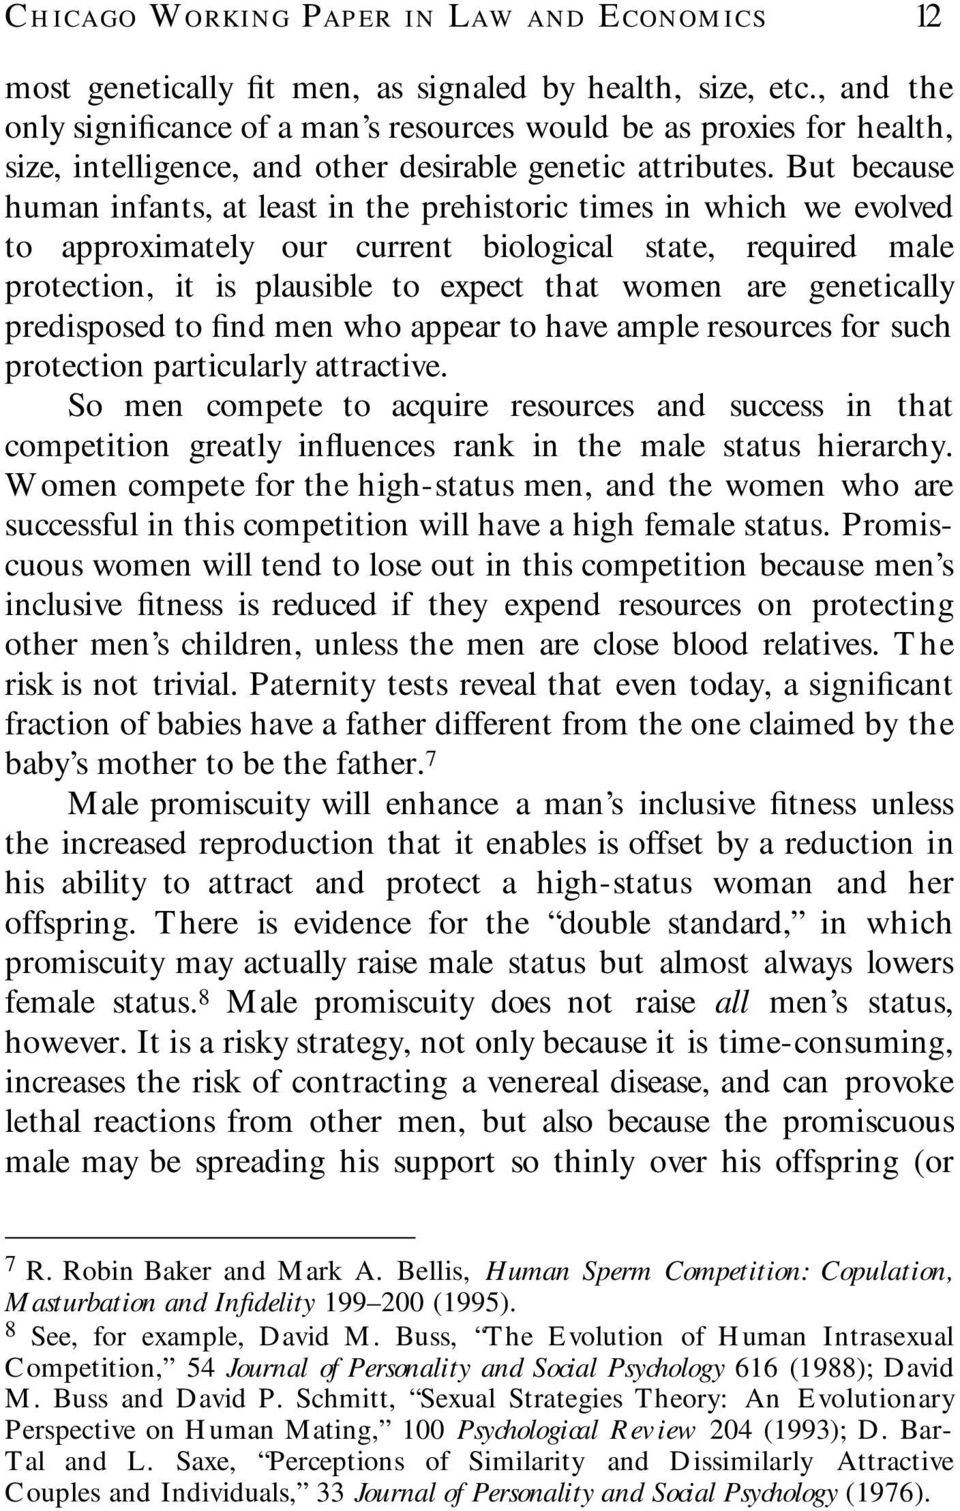 But because human infants, at least in the prehistoric times in which we evolved to approximately our current biological state, required male protection, it is plausible to expect that women are